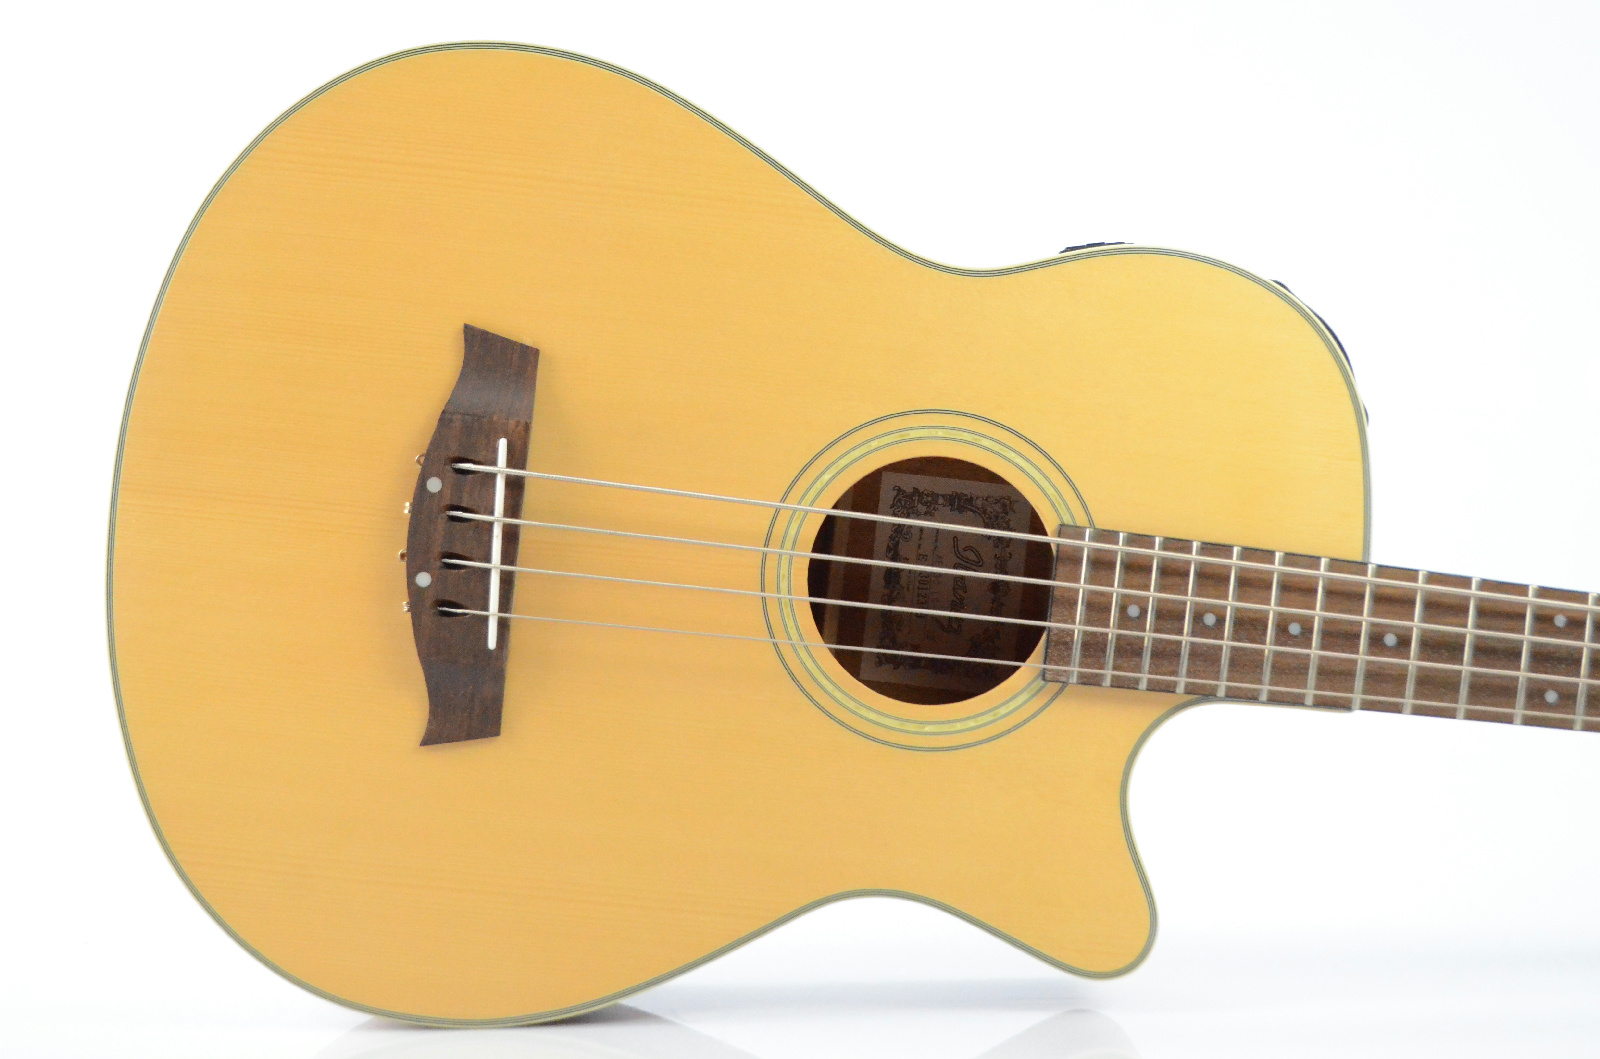 Ibanez AEB30-LG-OP-02 Acoustic-Electric Bass & Case Owned by Paul Gilbert #32856